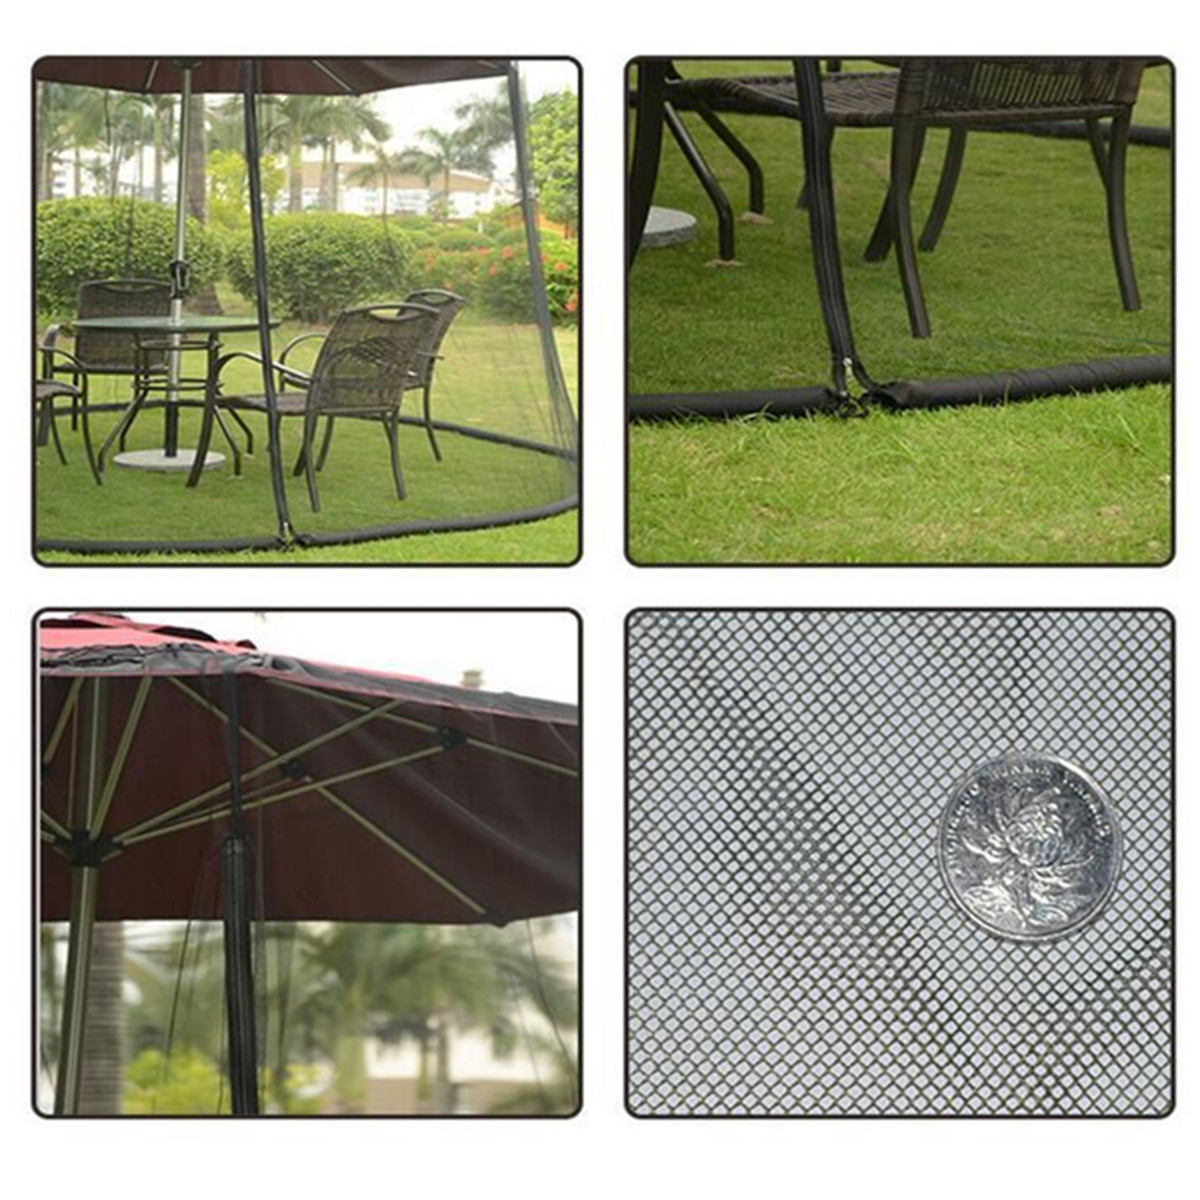 New Yard Umbrella Screen Cover Mosquito Bug Insect Net Repellents Outdoor  Patio Netting Garden Pest Control Supplies 335*220cm In Repellents From  Home ...